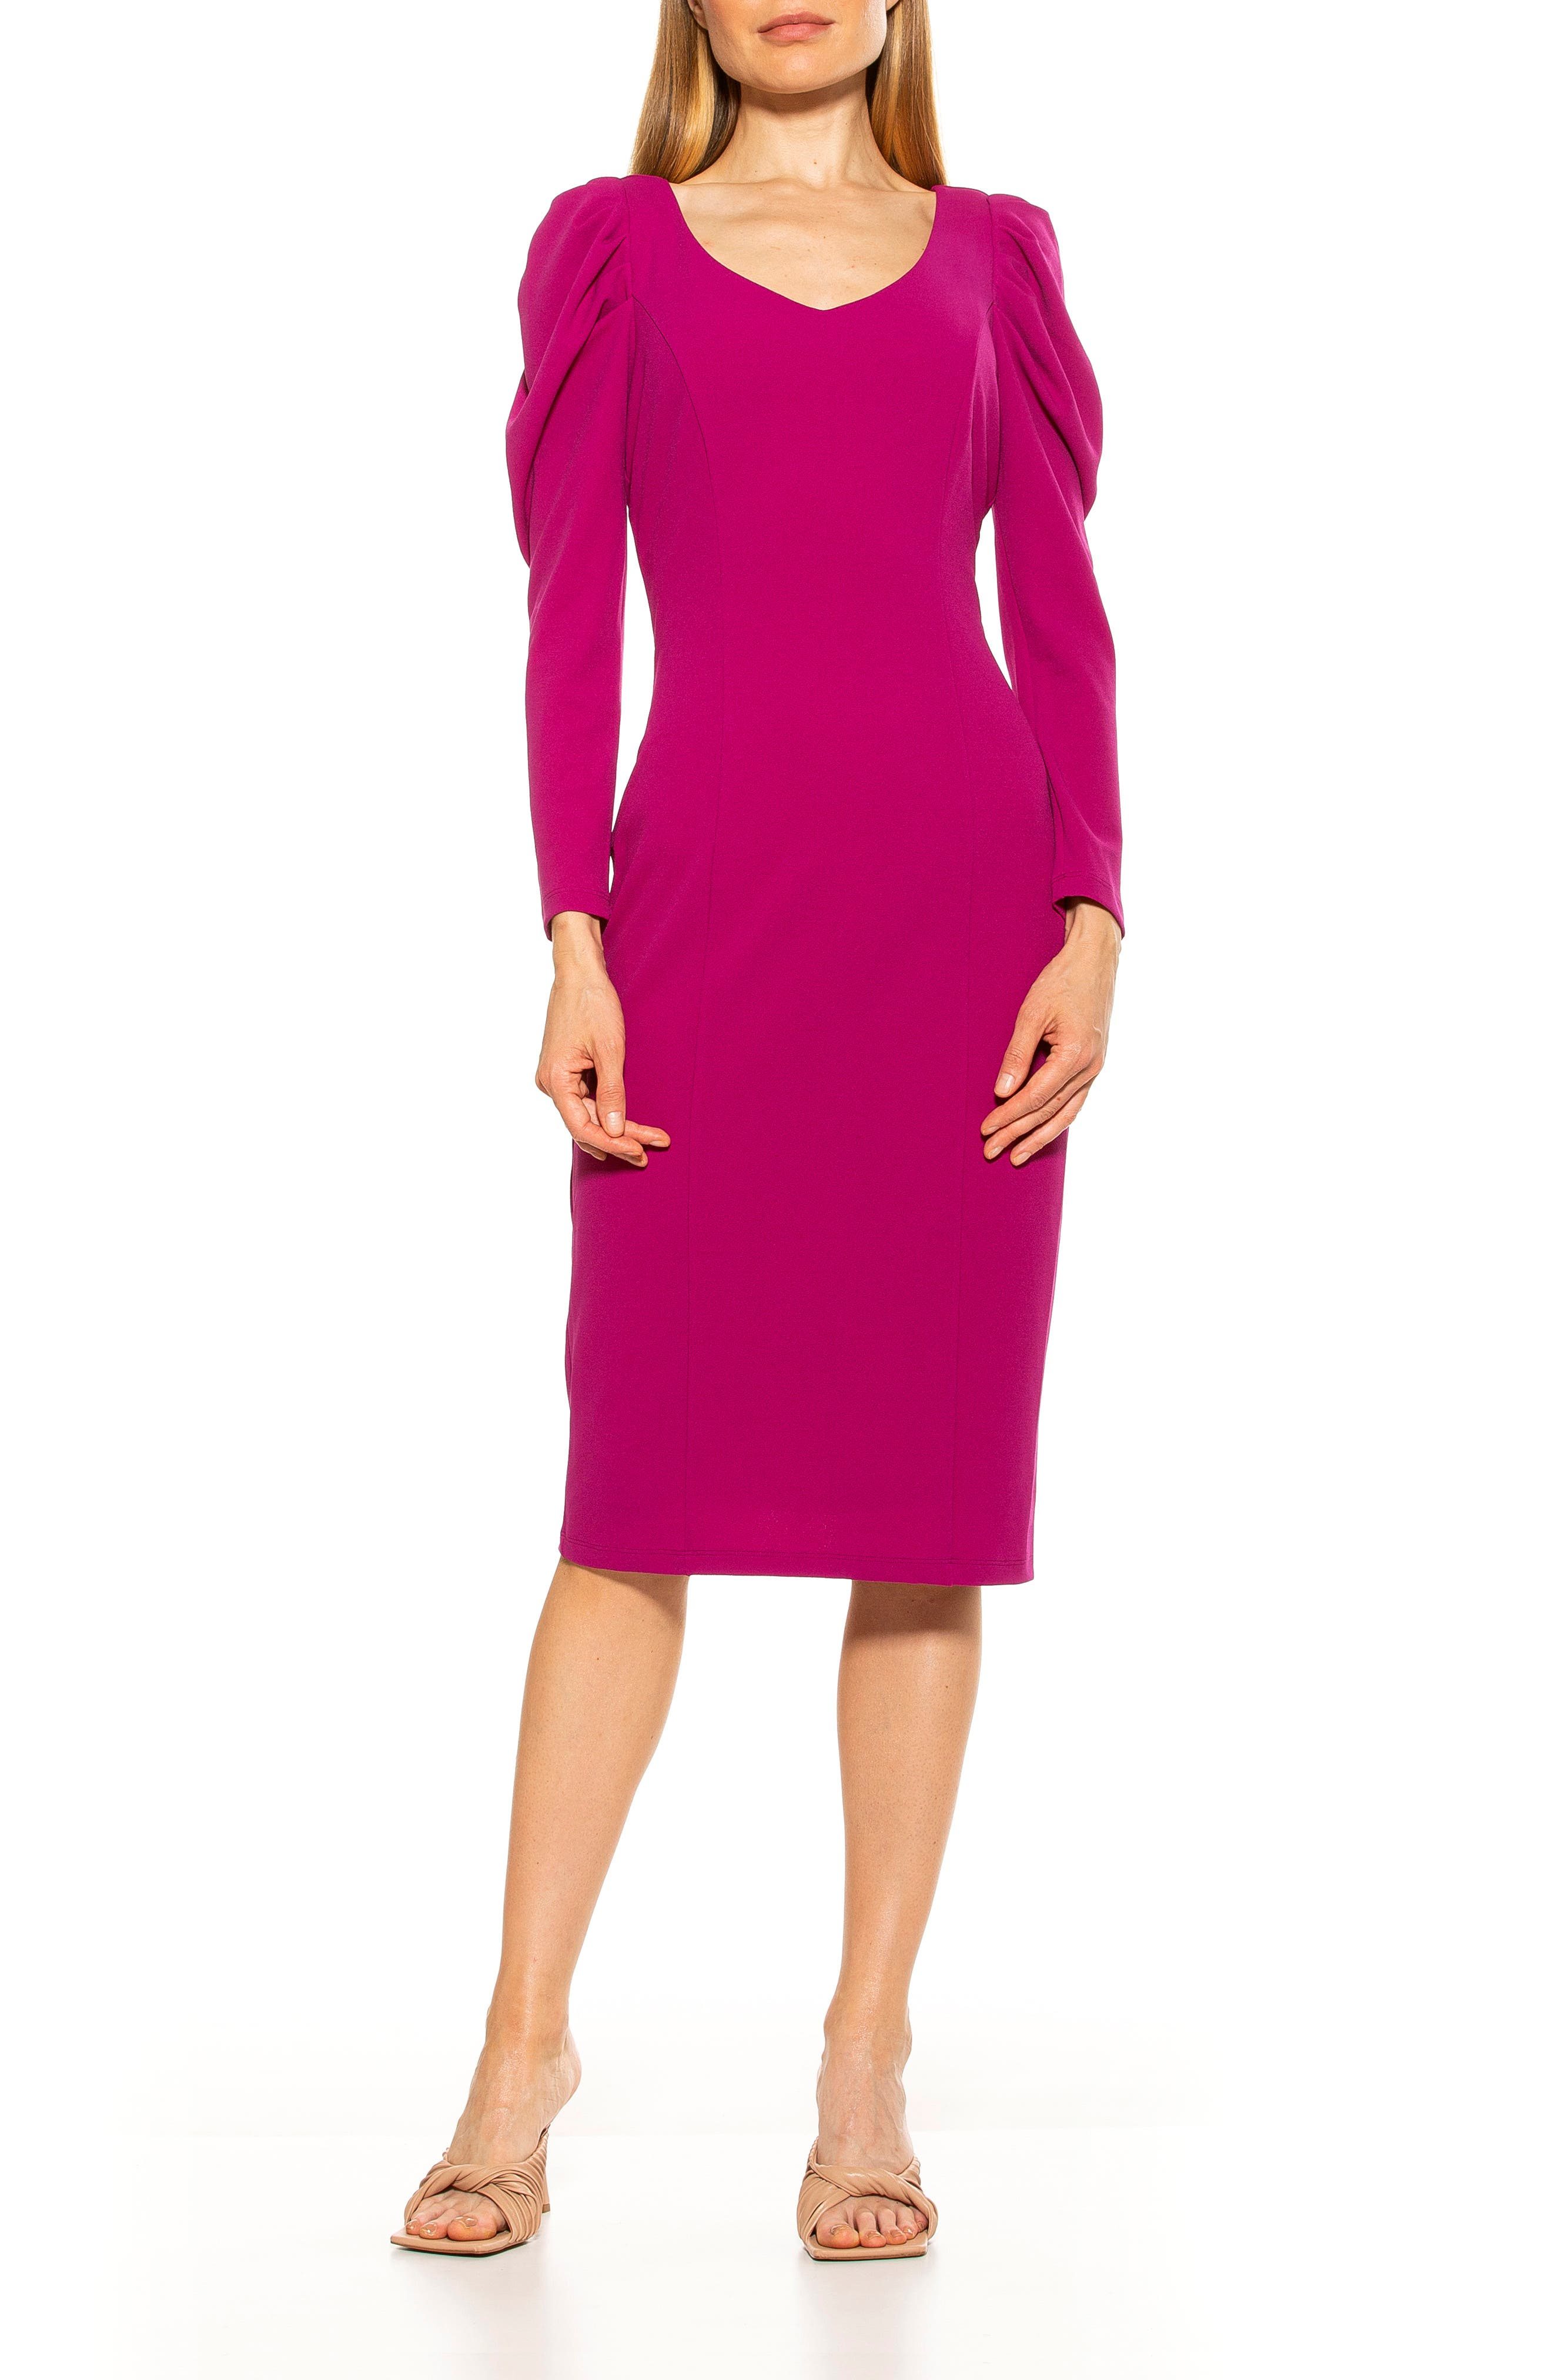 80s Fashion— What Women Wore in the 1980s ALEXIA ADMOR Puff Sleeve V-Neck Sheath Dress Size X-Large in Magenta at Nordstrom Rack $79.97 AT vintagedancer.com